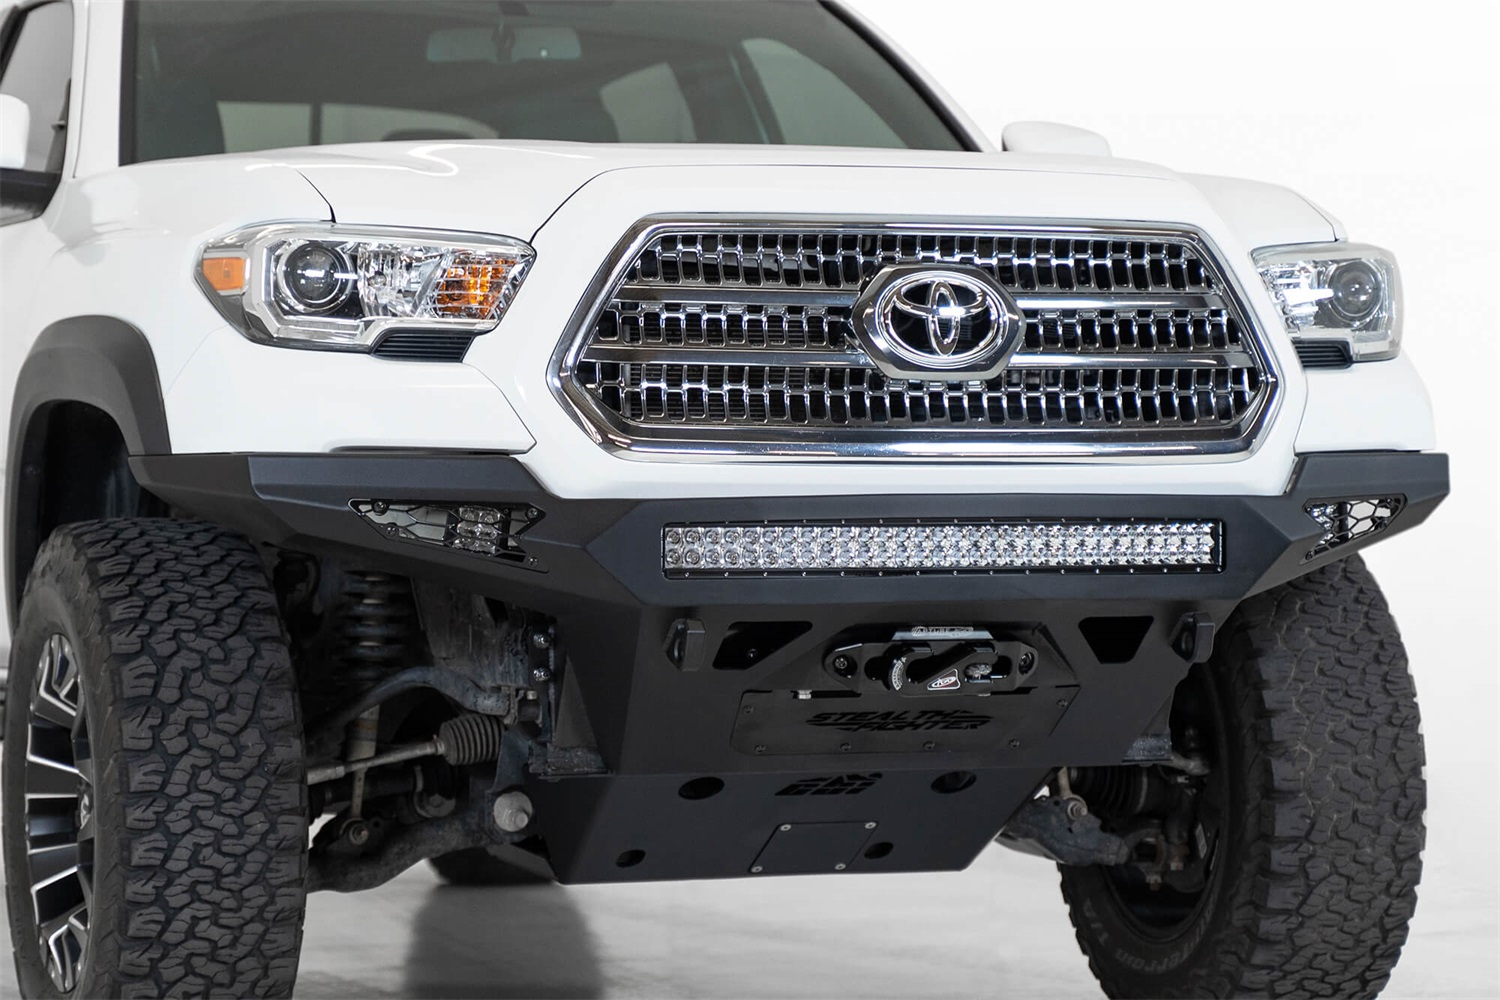 Addictive Desert Designs F681202200103 Stealth Fighter Front Bumper Fits Tacoma